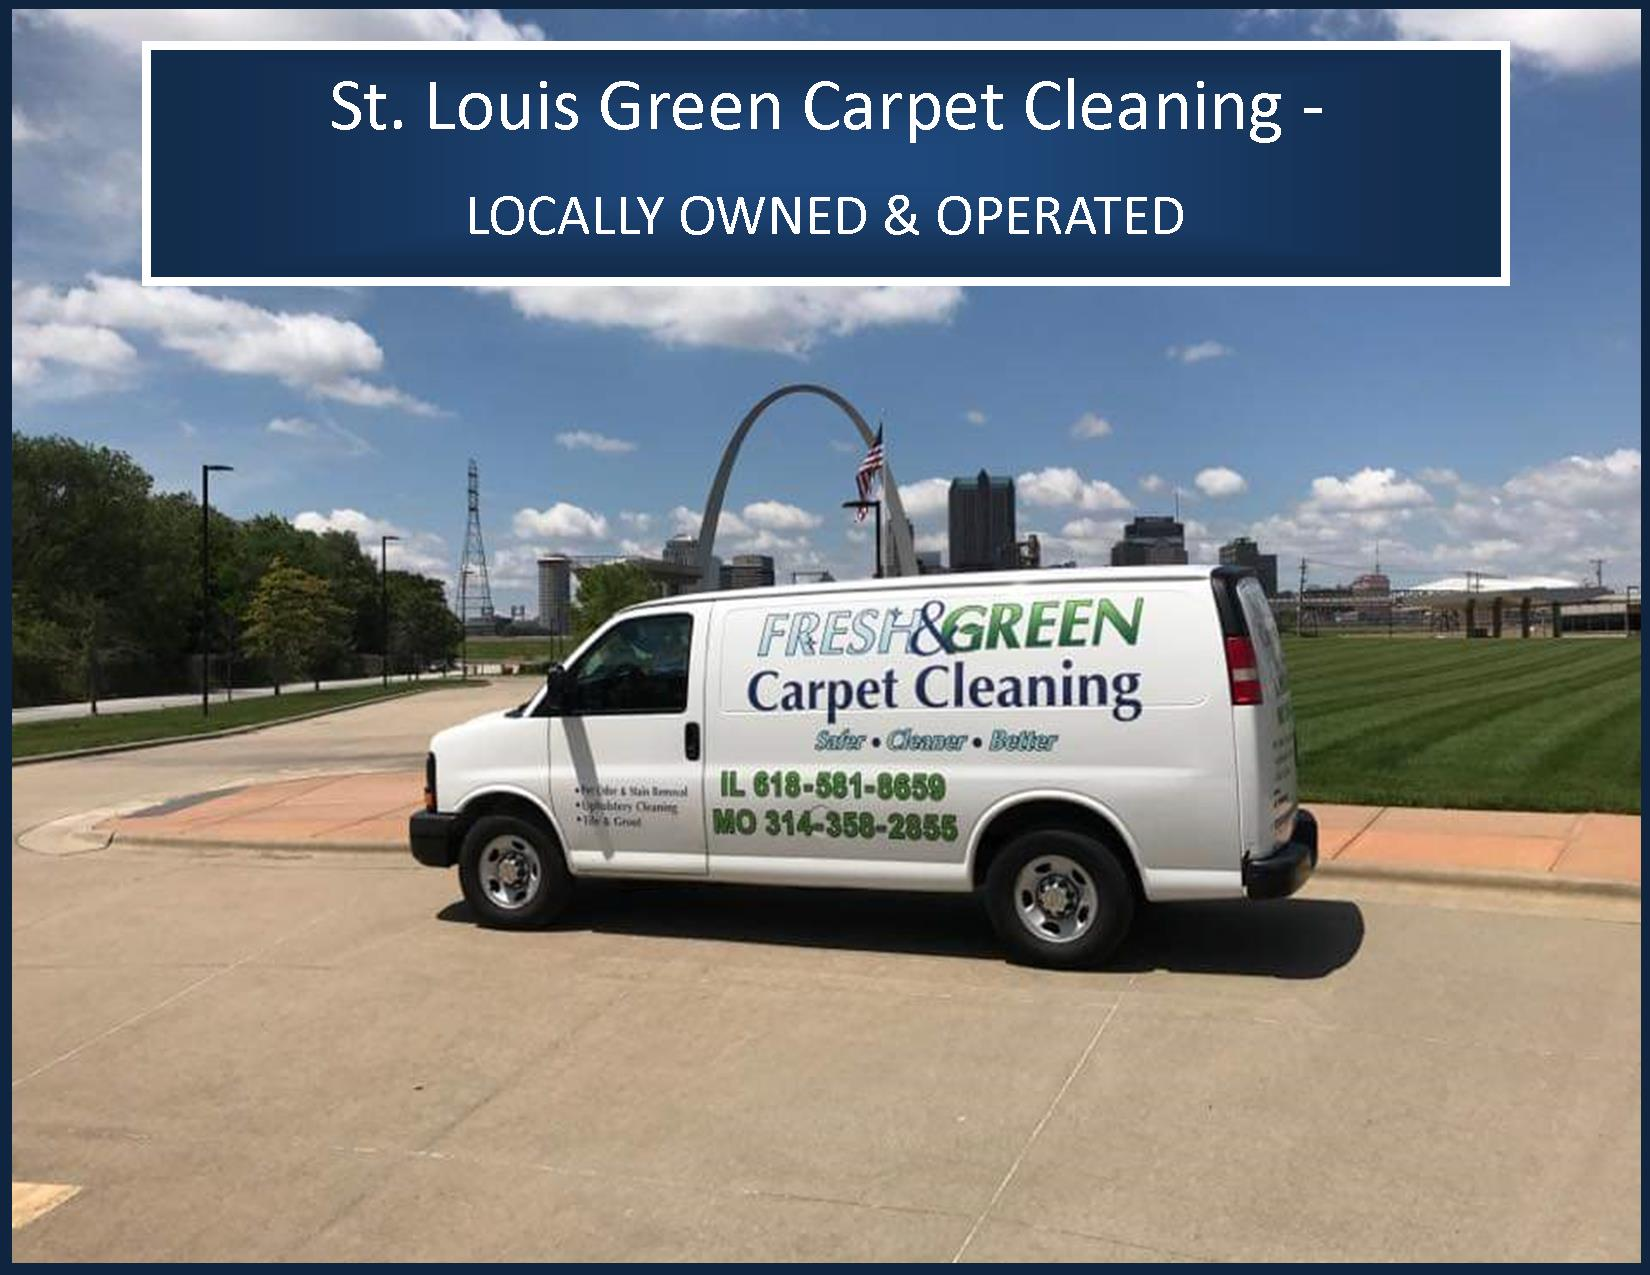 St Louis Green Carpet Cleaning